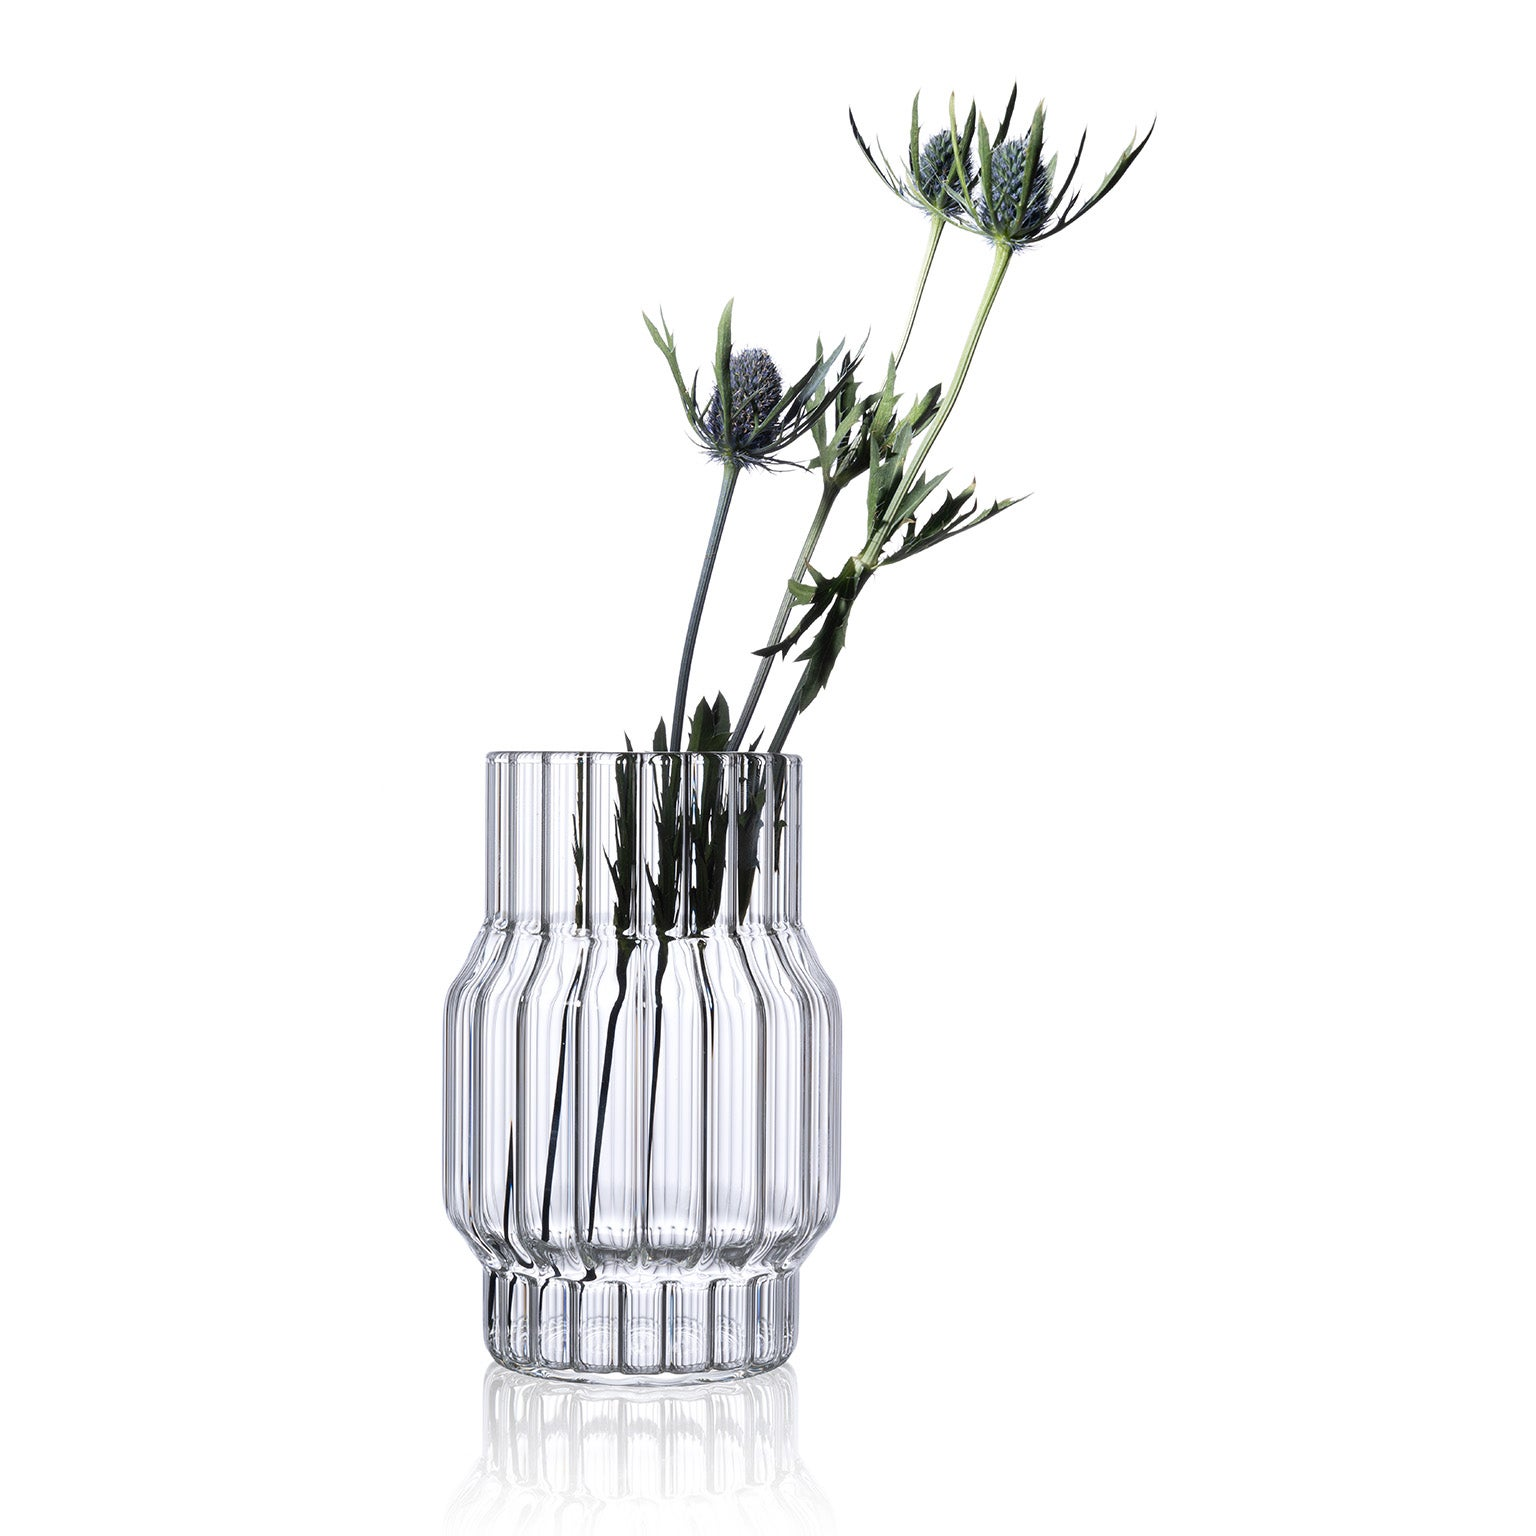 Contemporary Czech Gl Albany Small Fluted Vase Handcrafted, in ... on small flower arrangements, small flower art, small flower holders, small flower decor, small green vase, small flower bouquets, small colorful flowers, small japanese, small flower dishes, small flower plates, small flower stencils, small red flowers, small flower beds, small vase arrangements, small jugs, small rose bouquets for bridesmaids, small vase centerpieces, small flower trees, small flower curtains, small flower cards,